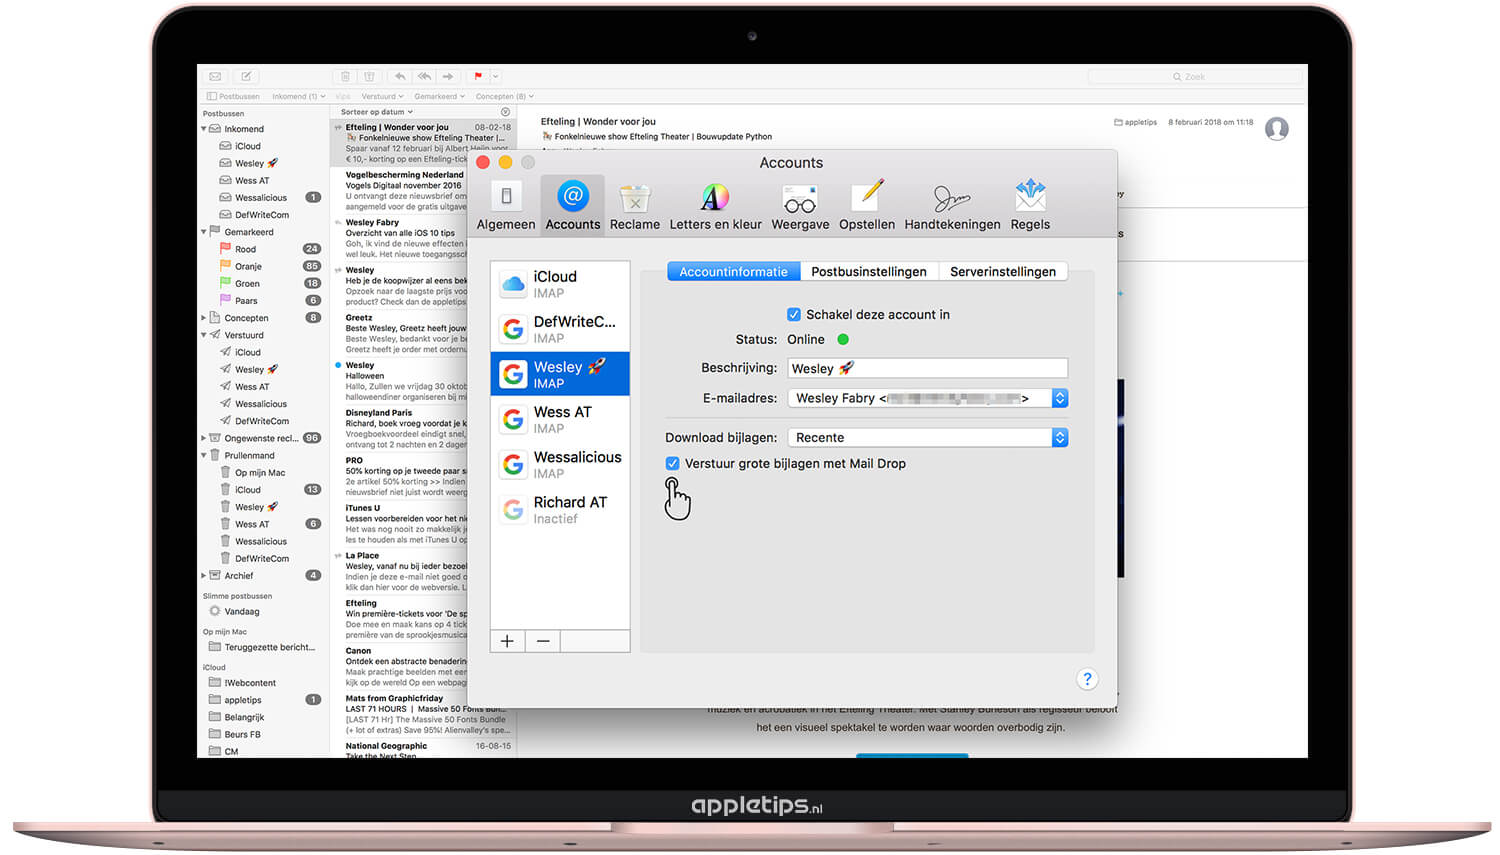 Mac: Grote bestanden versturen via Mail Drop - appletips